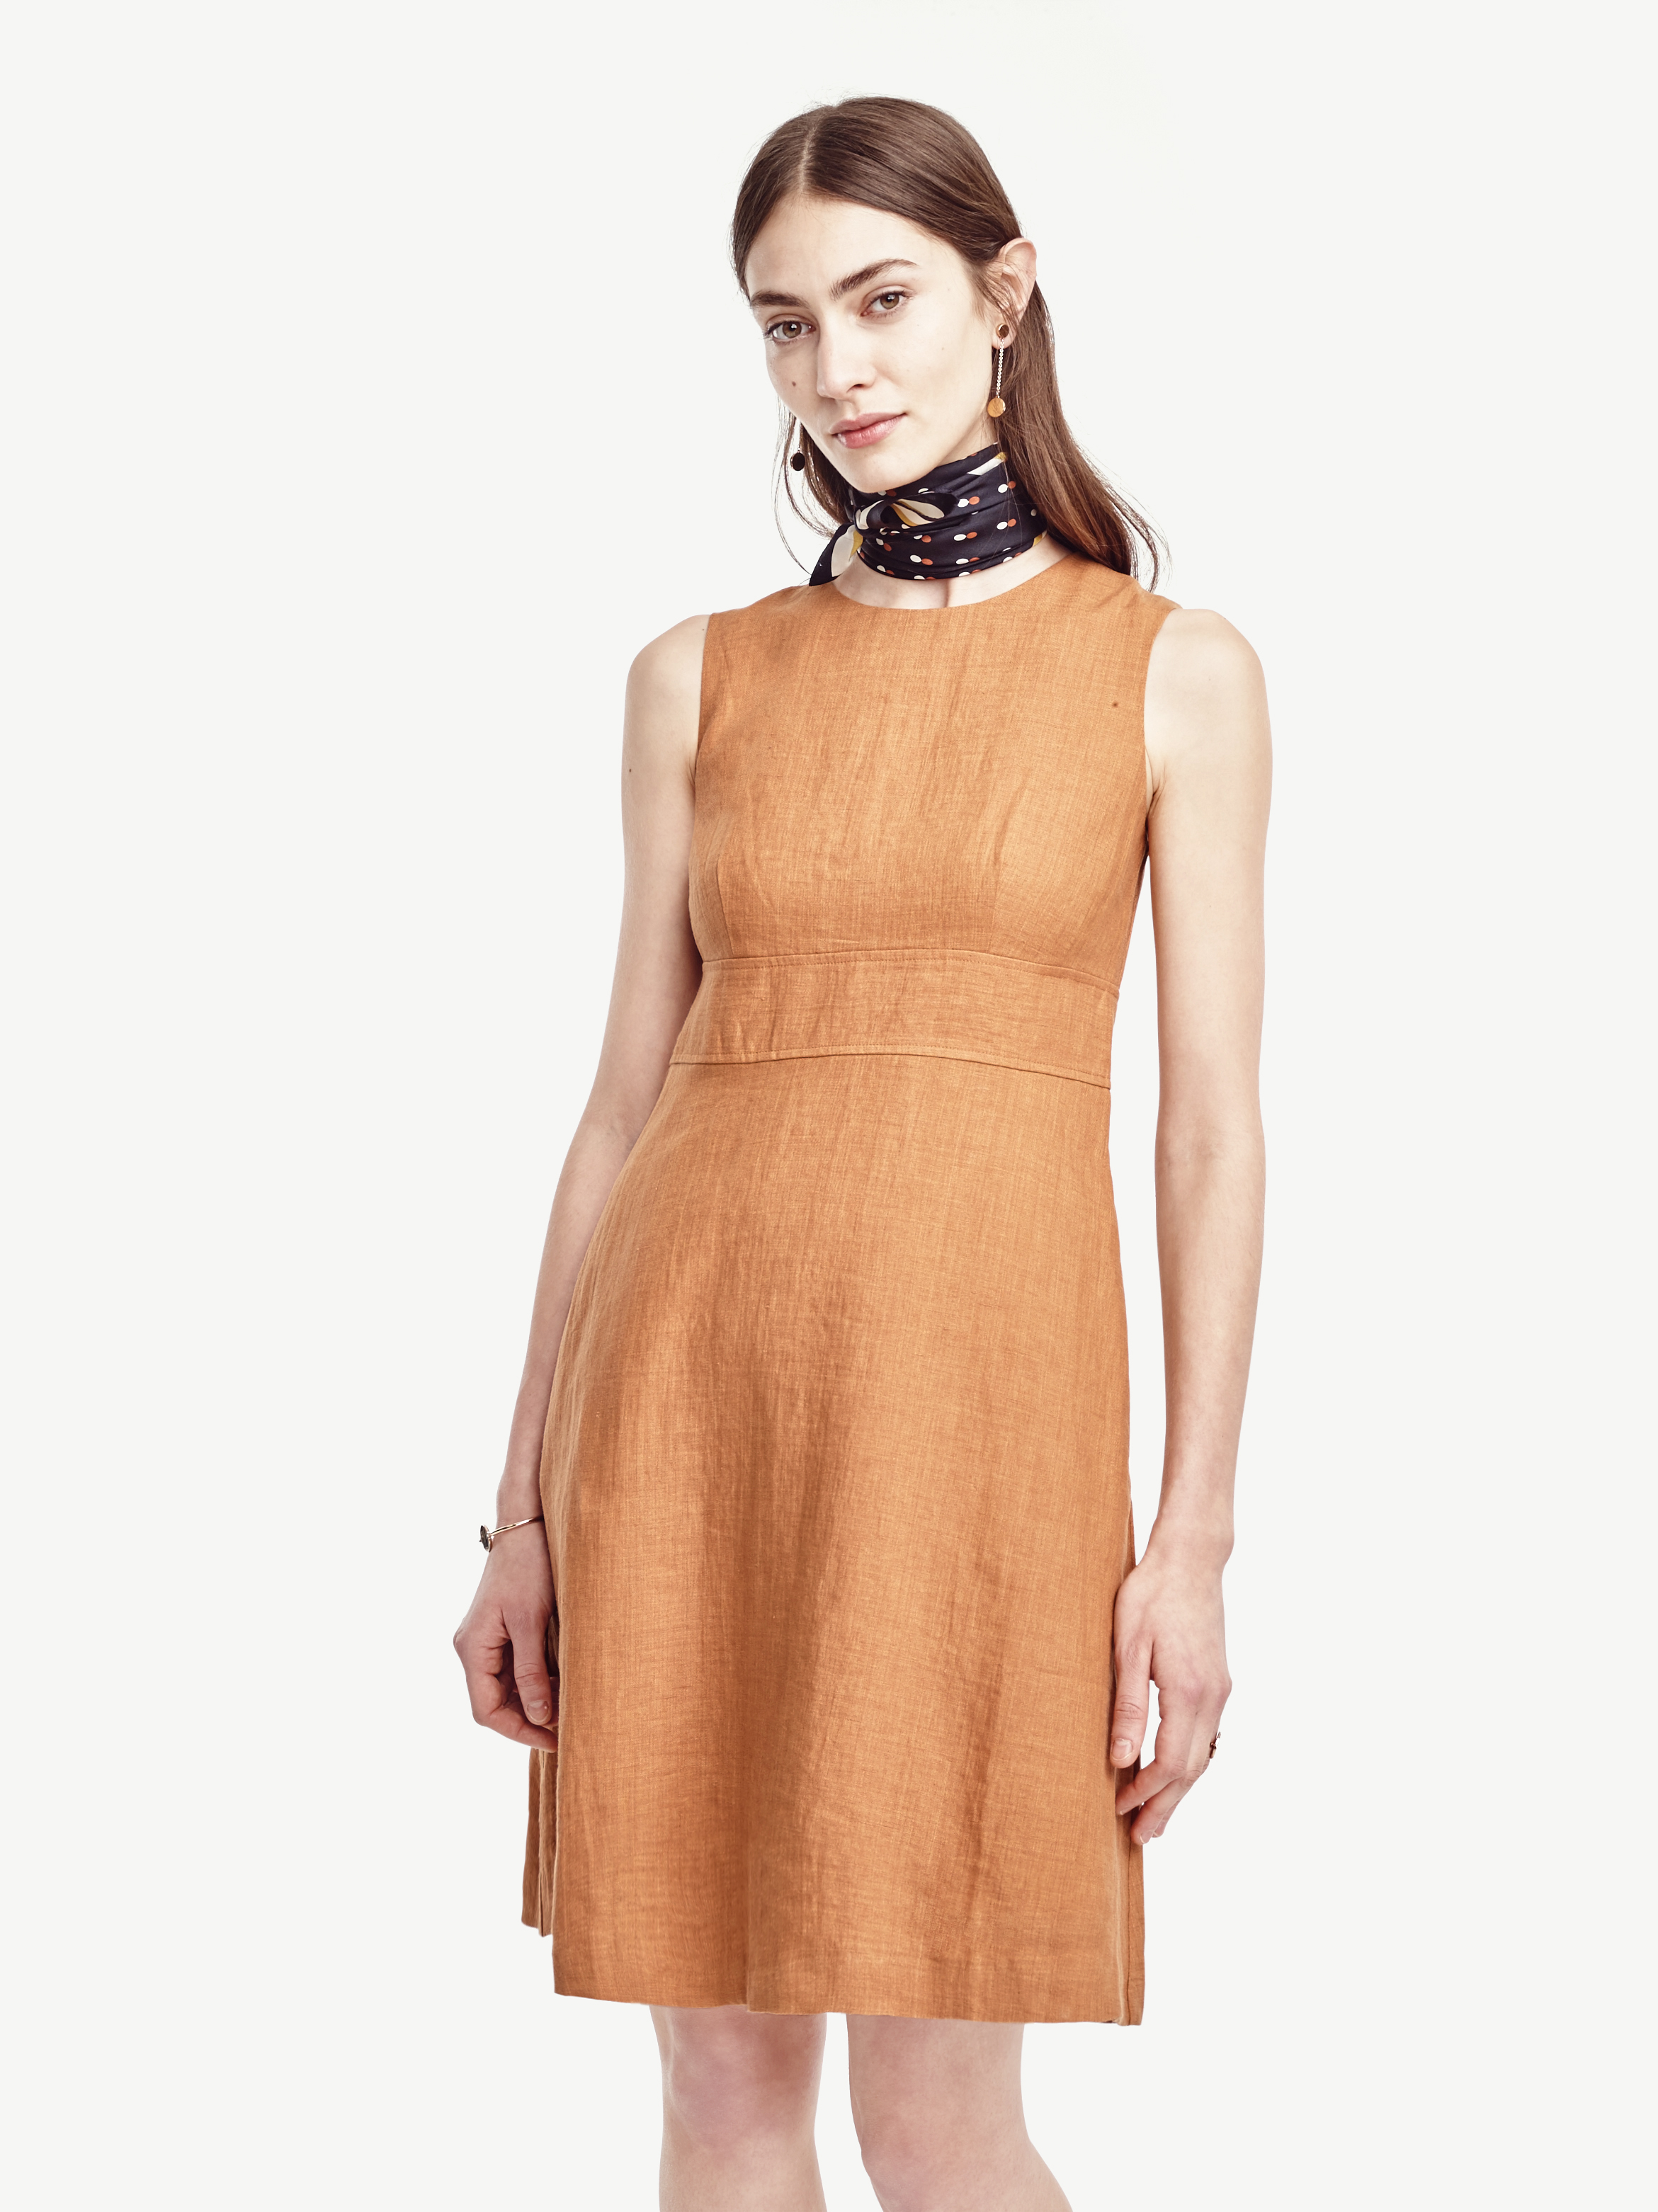 6c23338746 Lyst - Ann Taylor Petite Linen Flare Dress in Brown